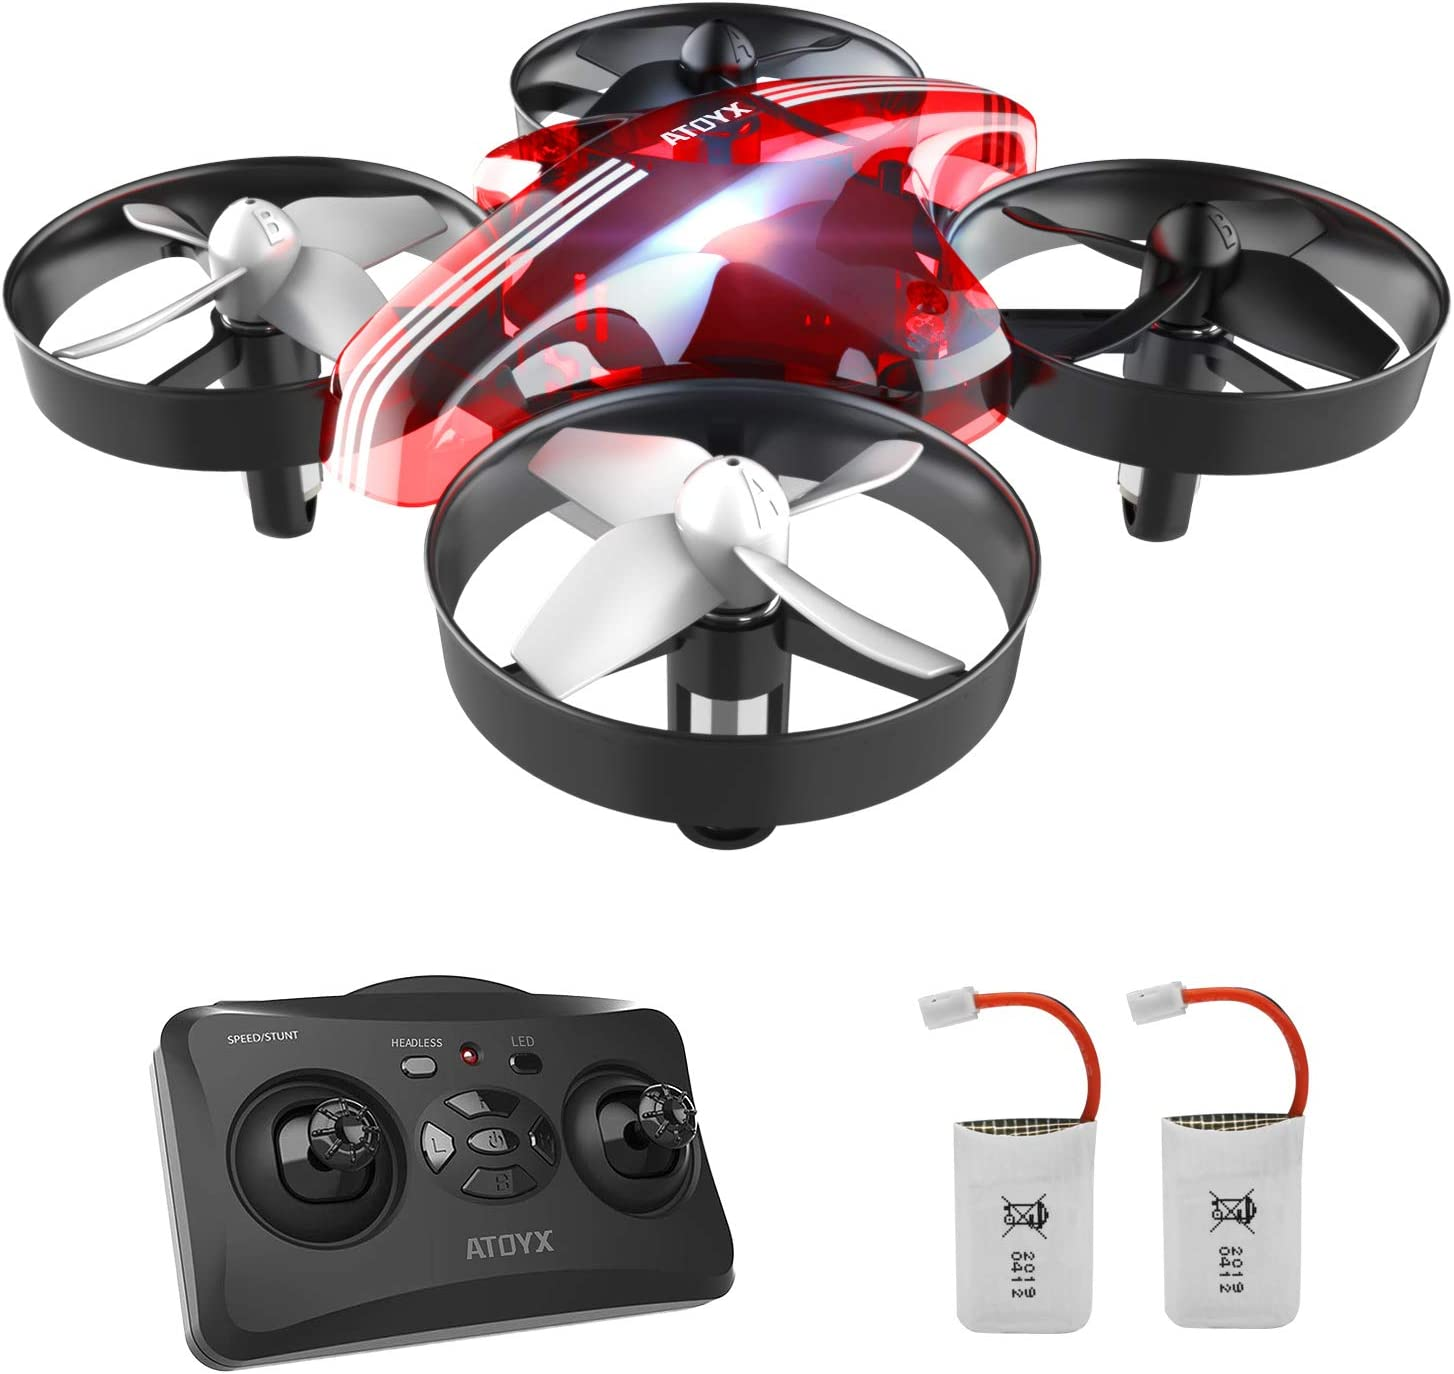 One Key Return Mini Drone RC Quadcopters Headless Mode Helicopter Kids Toys Gift